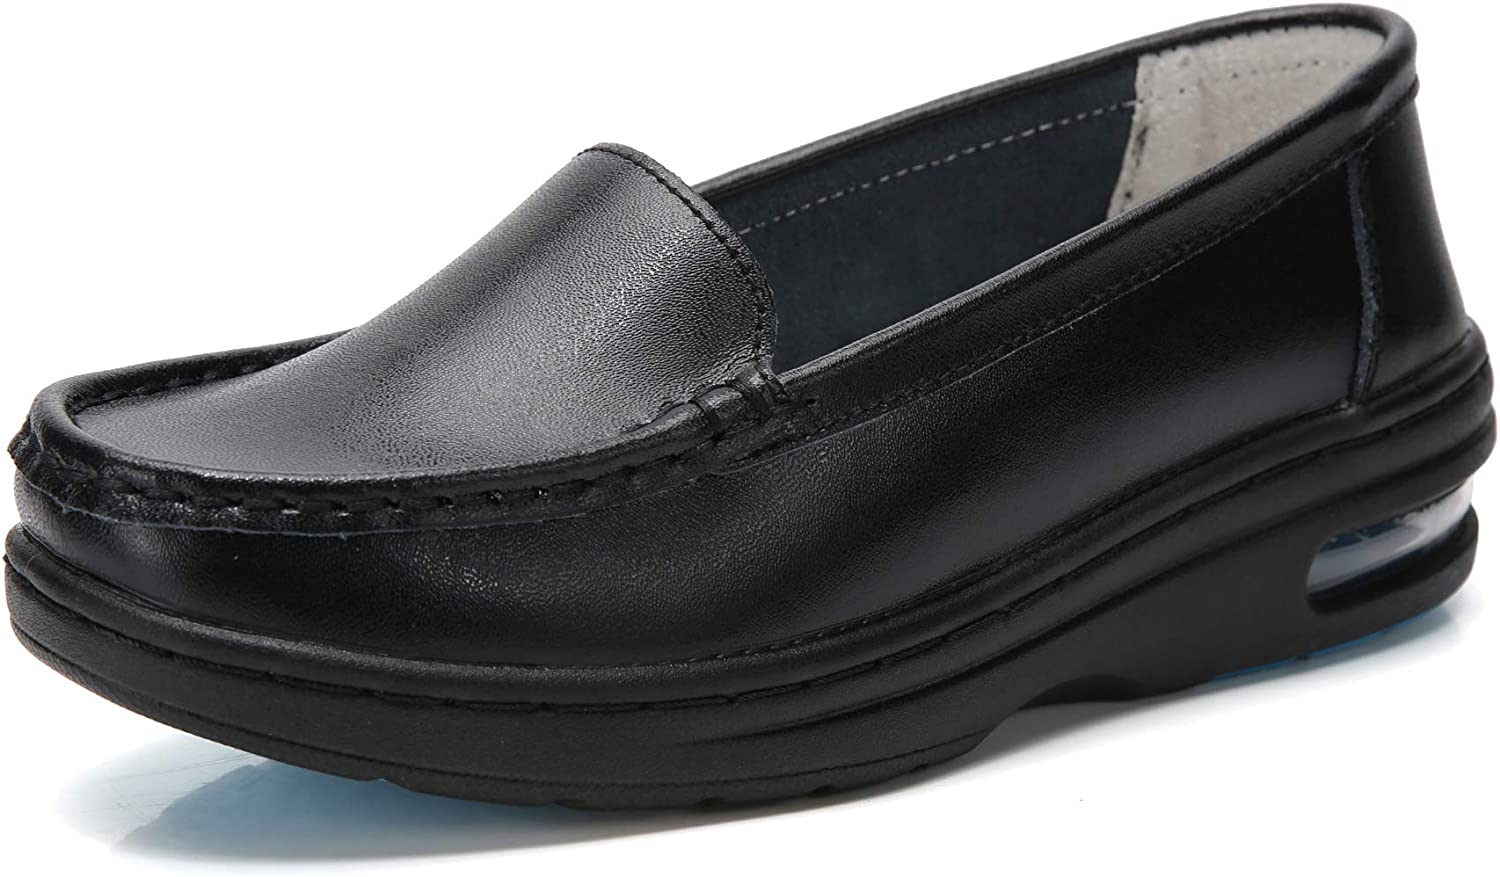 all leather shoes for nursing